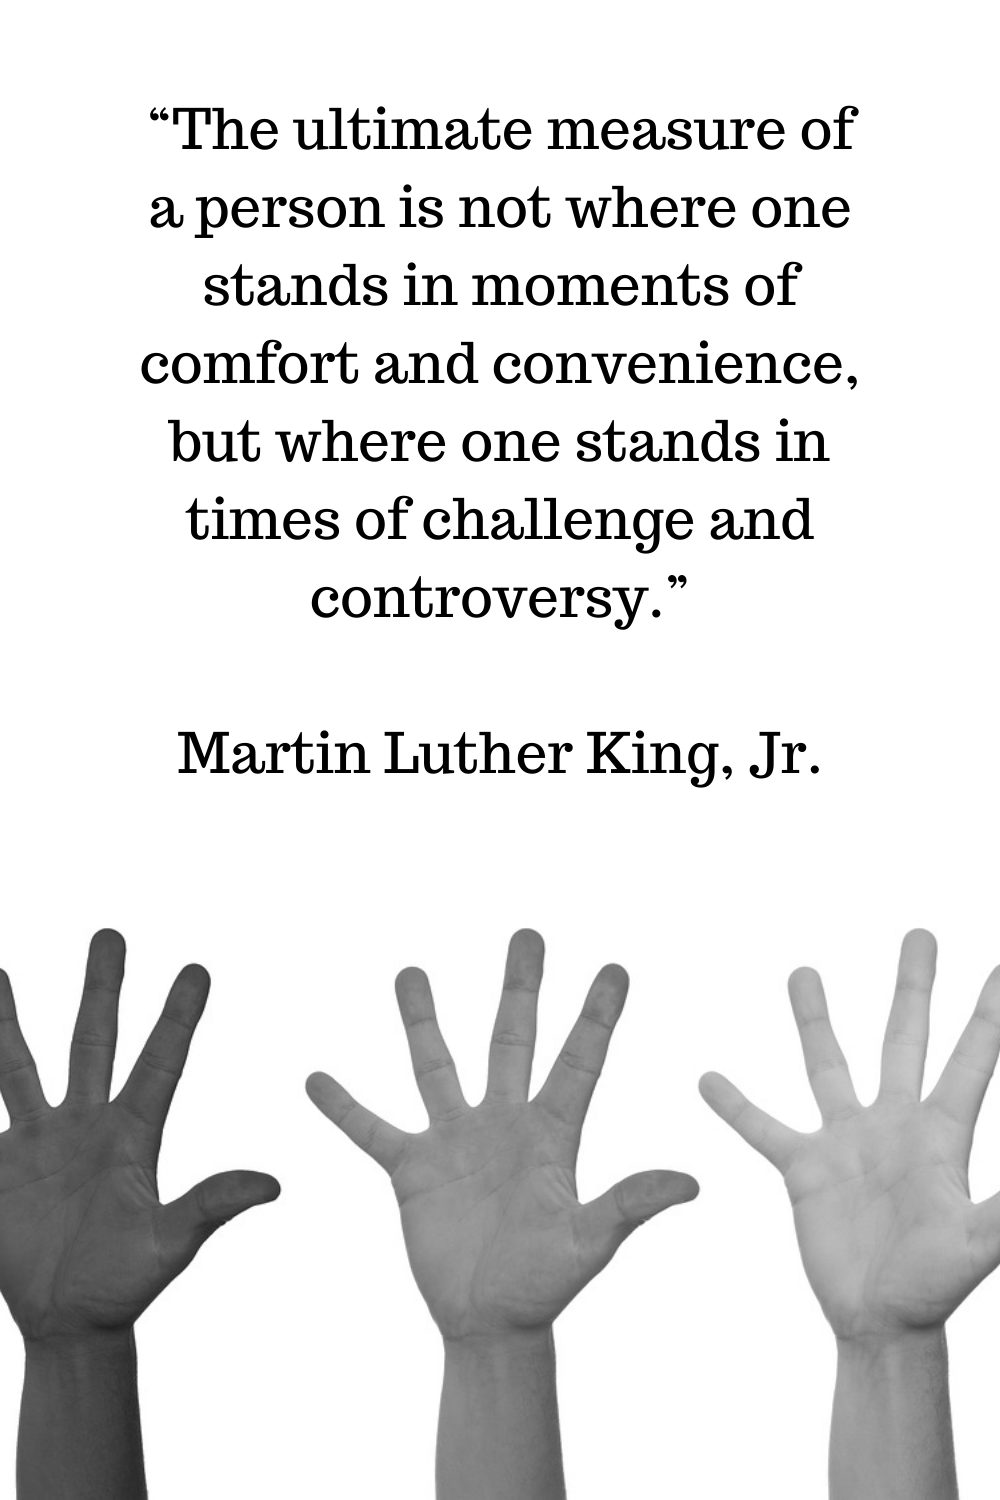 """The ultimate measure of a person is not where one stands in moments of comfort and convenience, but where one stands in times of challenge and controversy."" – Martin Luther King, Jr."